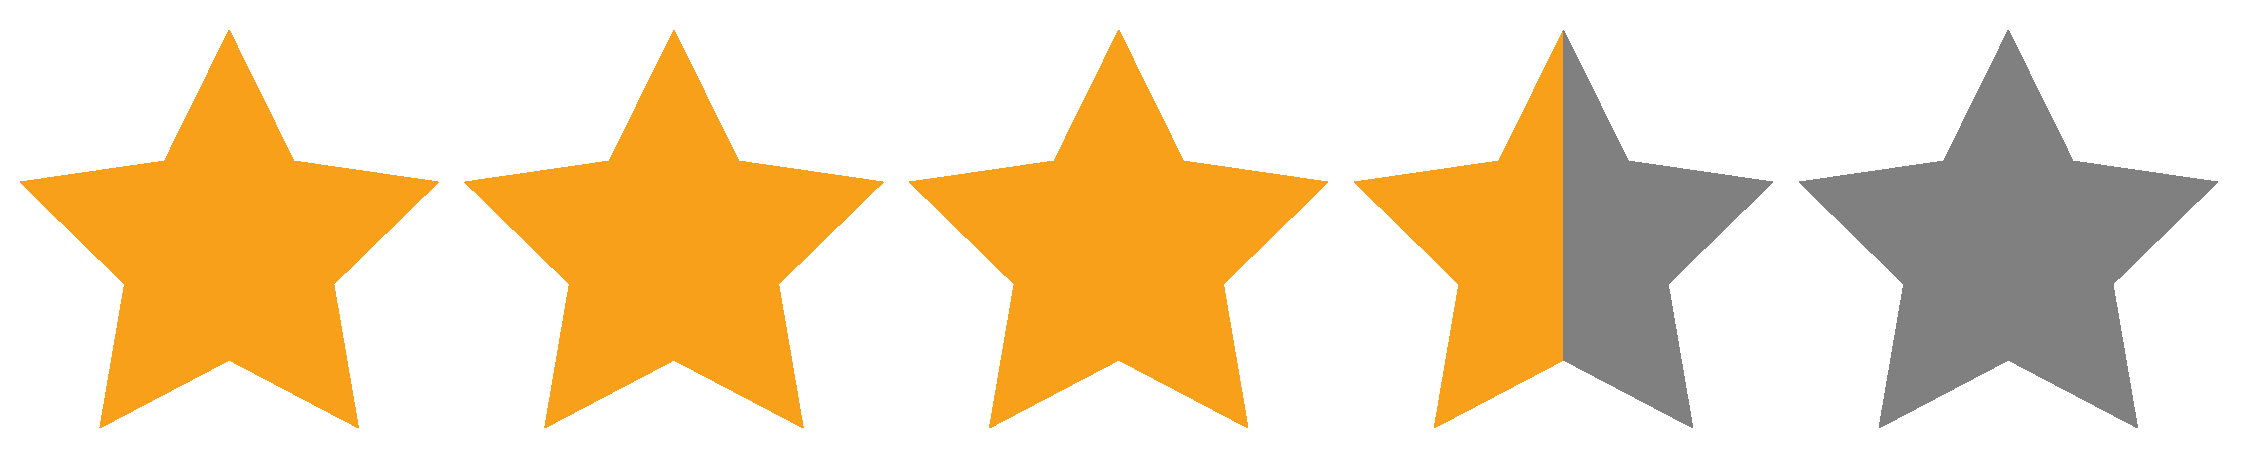 Star rating which shows 3.5 stars out of 5